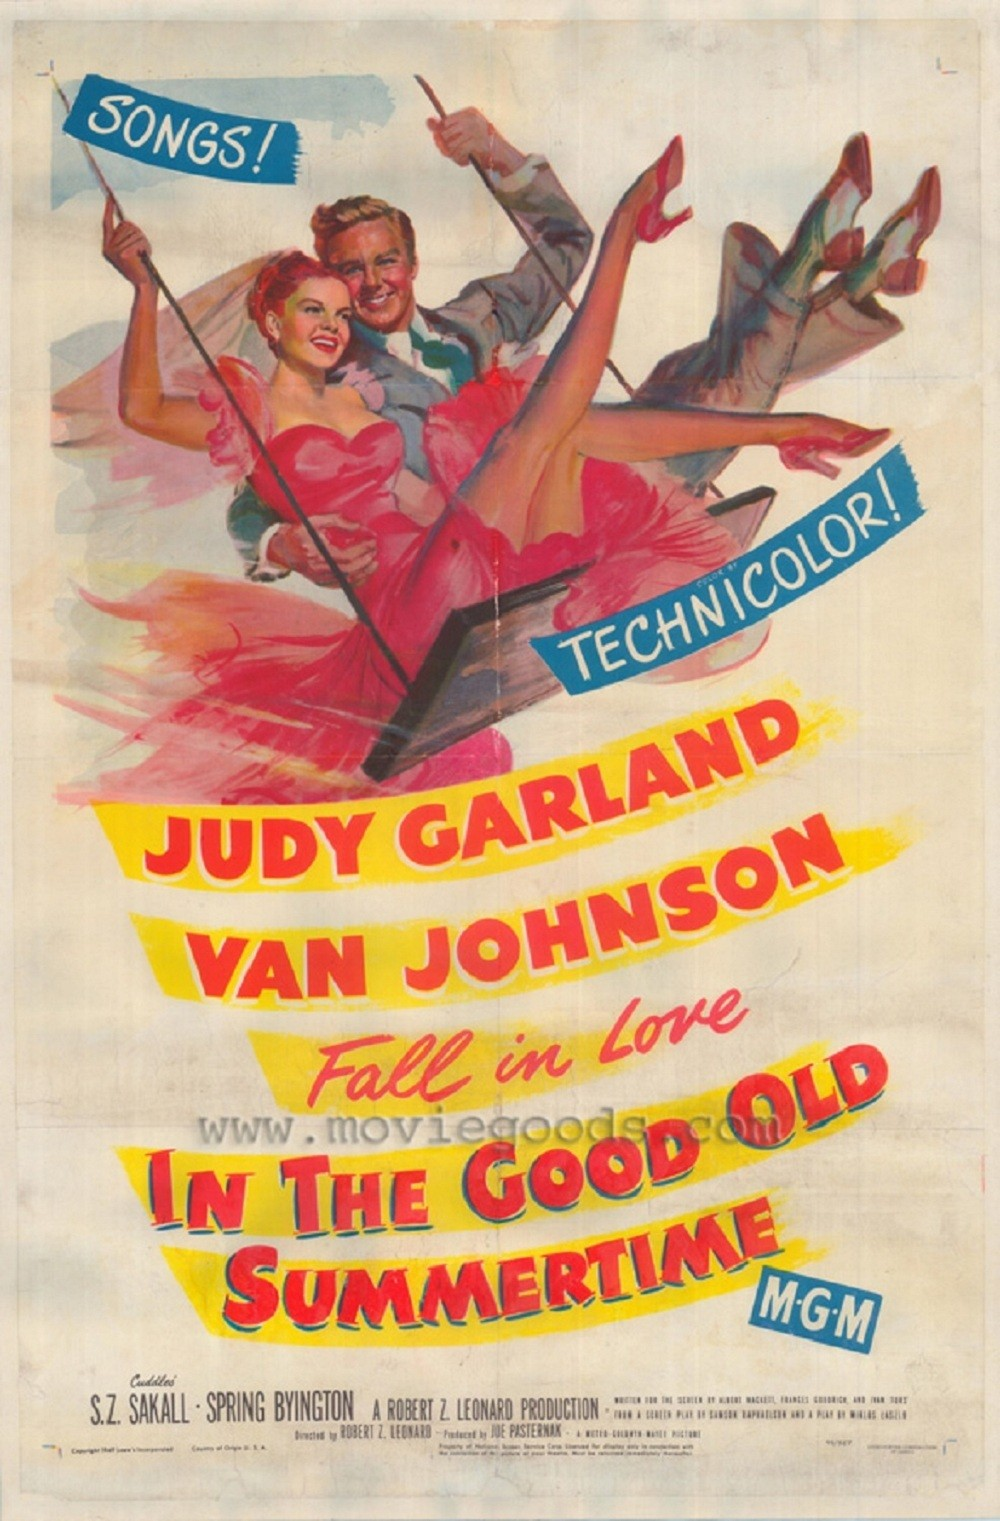 In the Good Old Summertime (1949) – Journeys in Classic Film